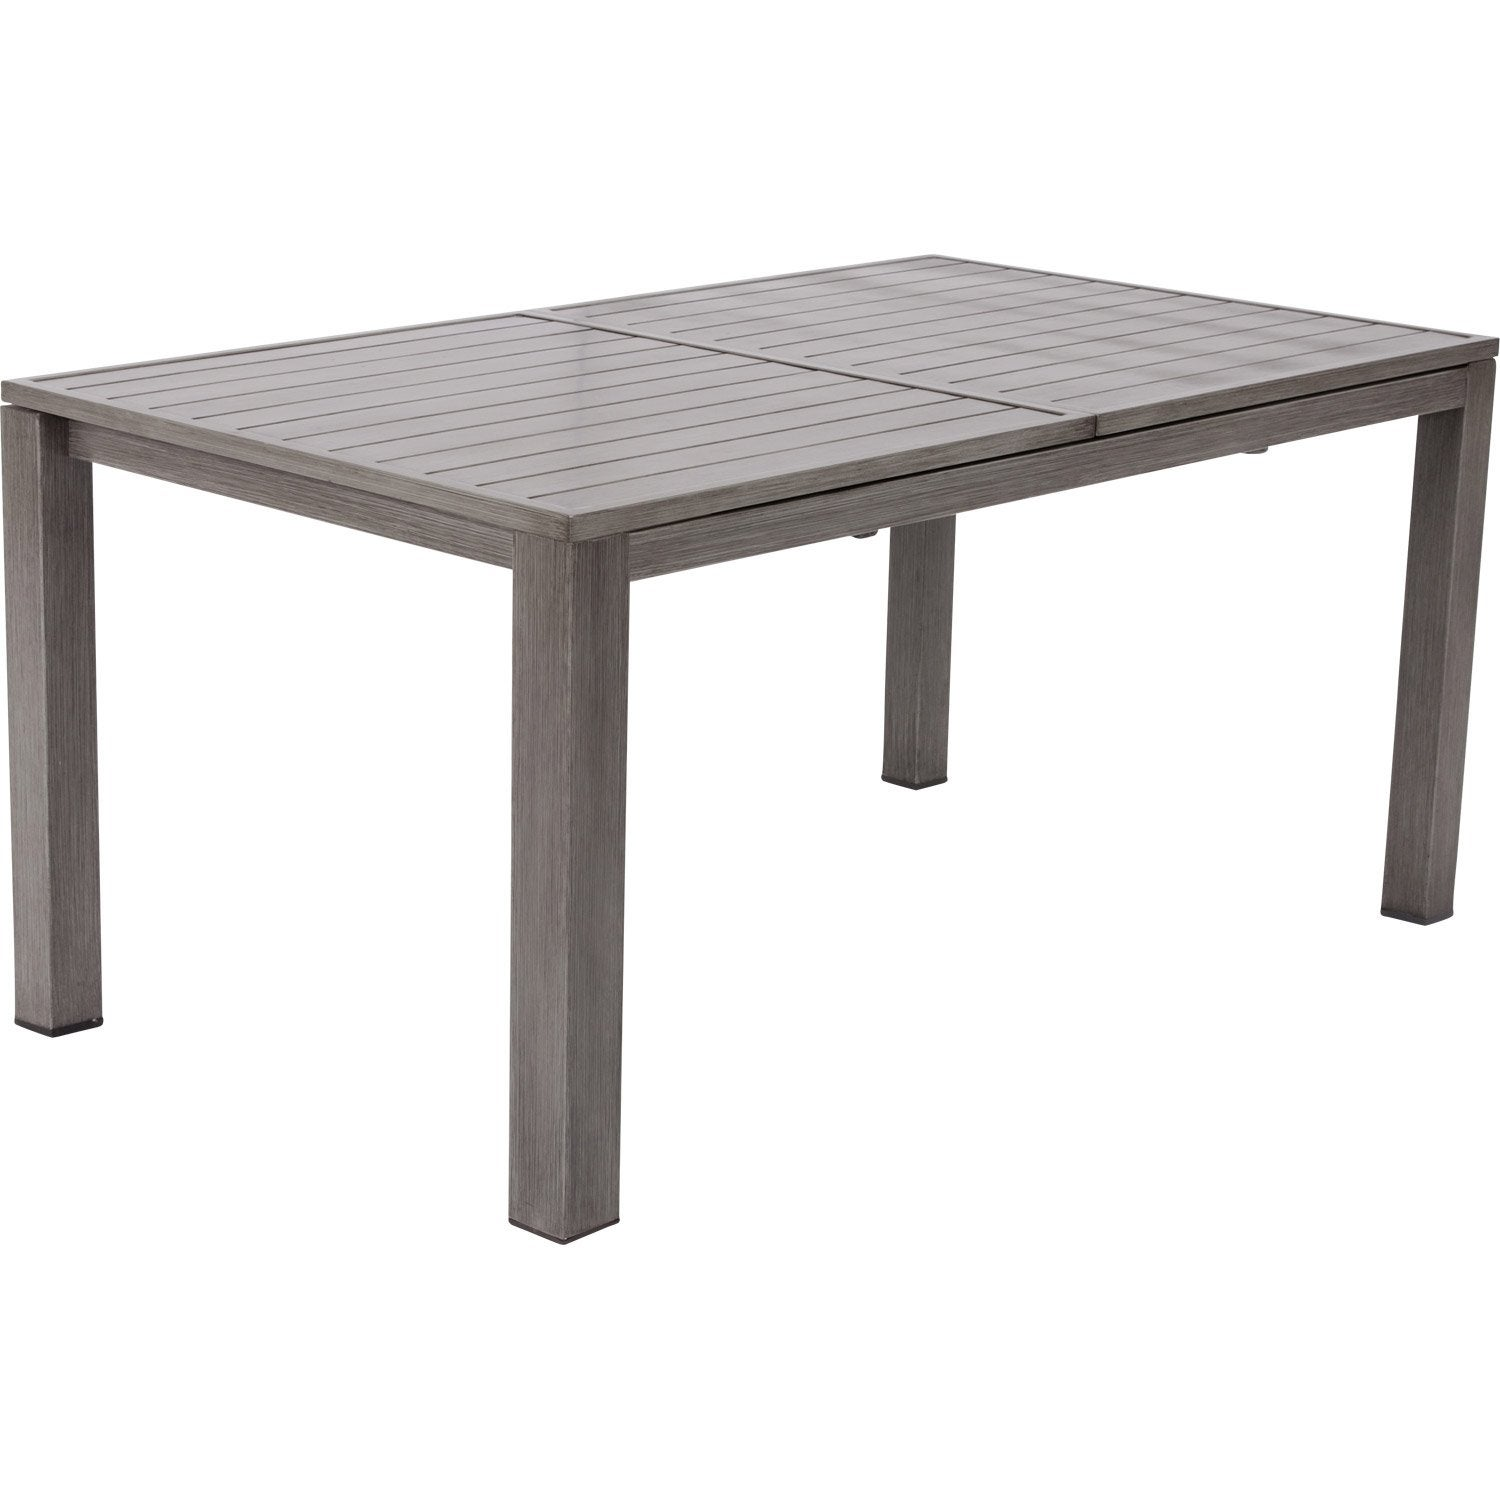 Table de jardin naterial antibes rectangulaire gris look for Table exterieur 2 personnes